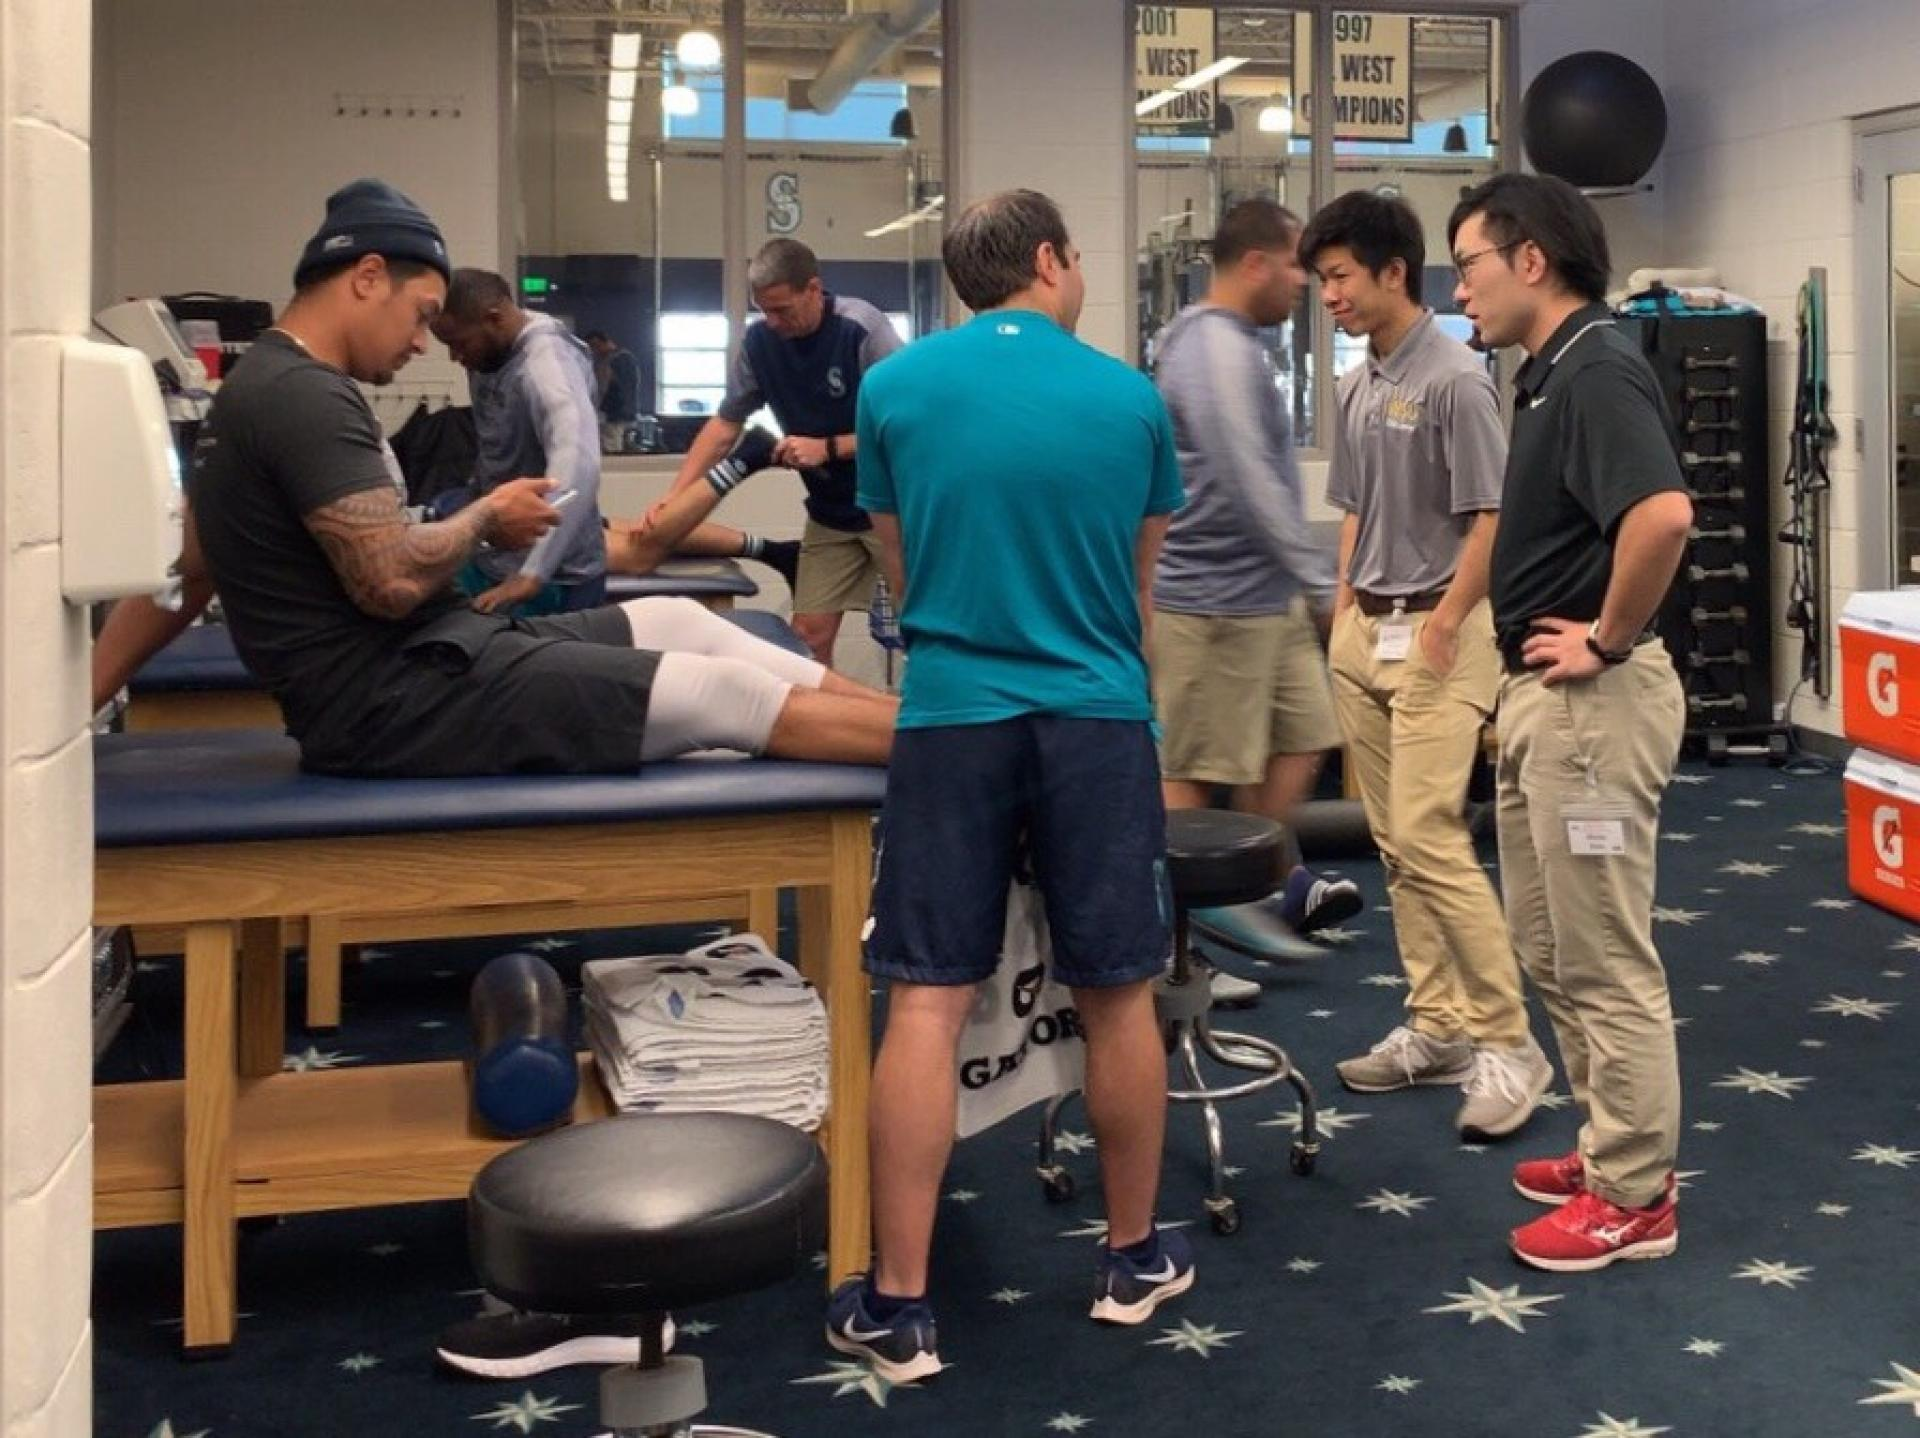 Athletic trainers in the athletic training room with players.